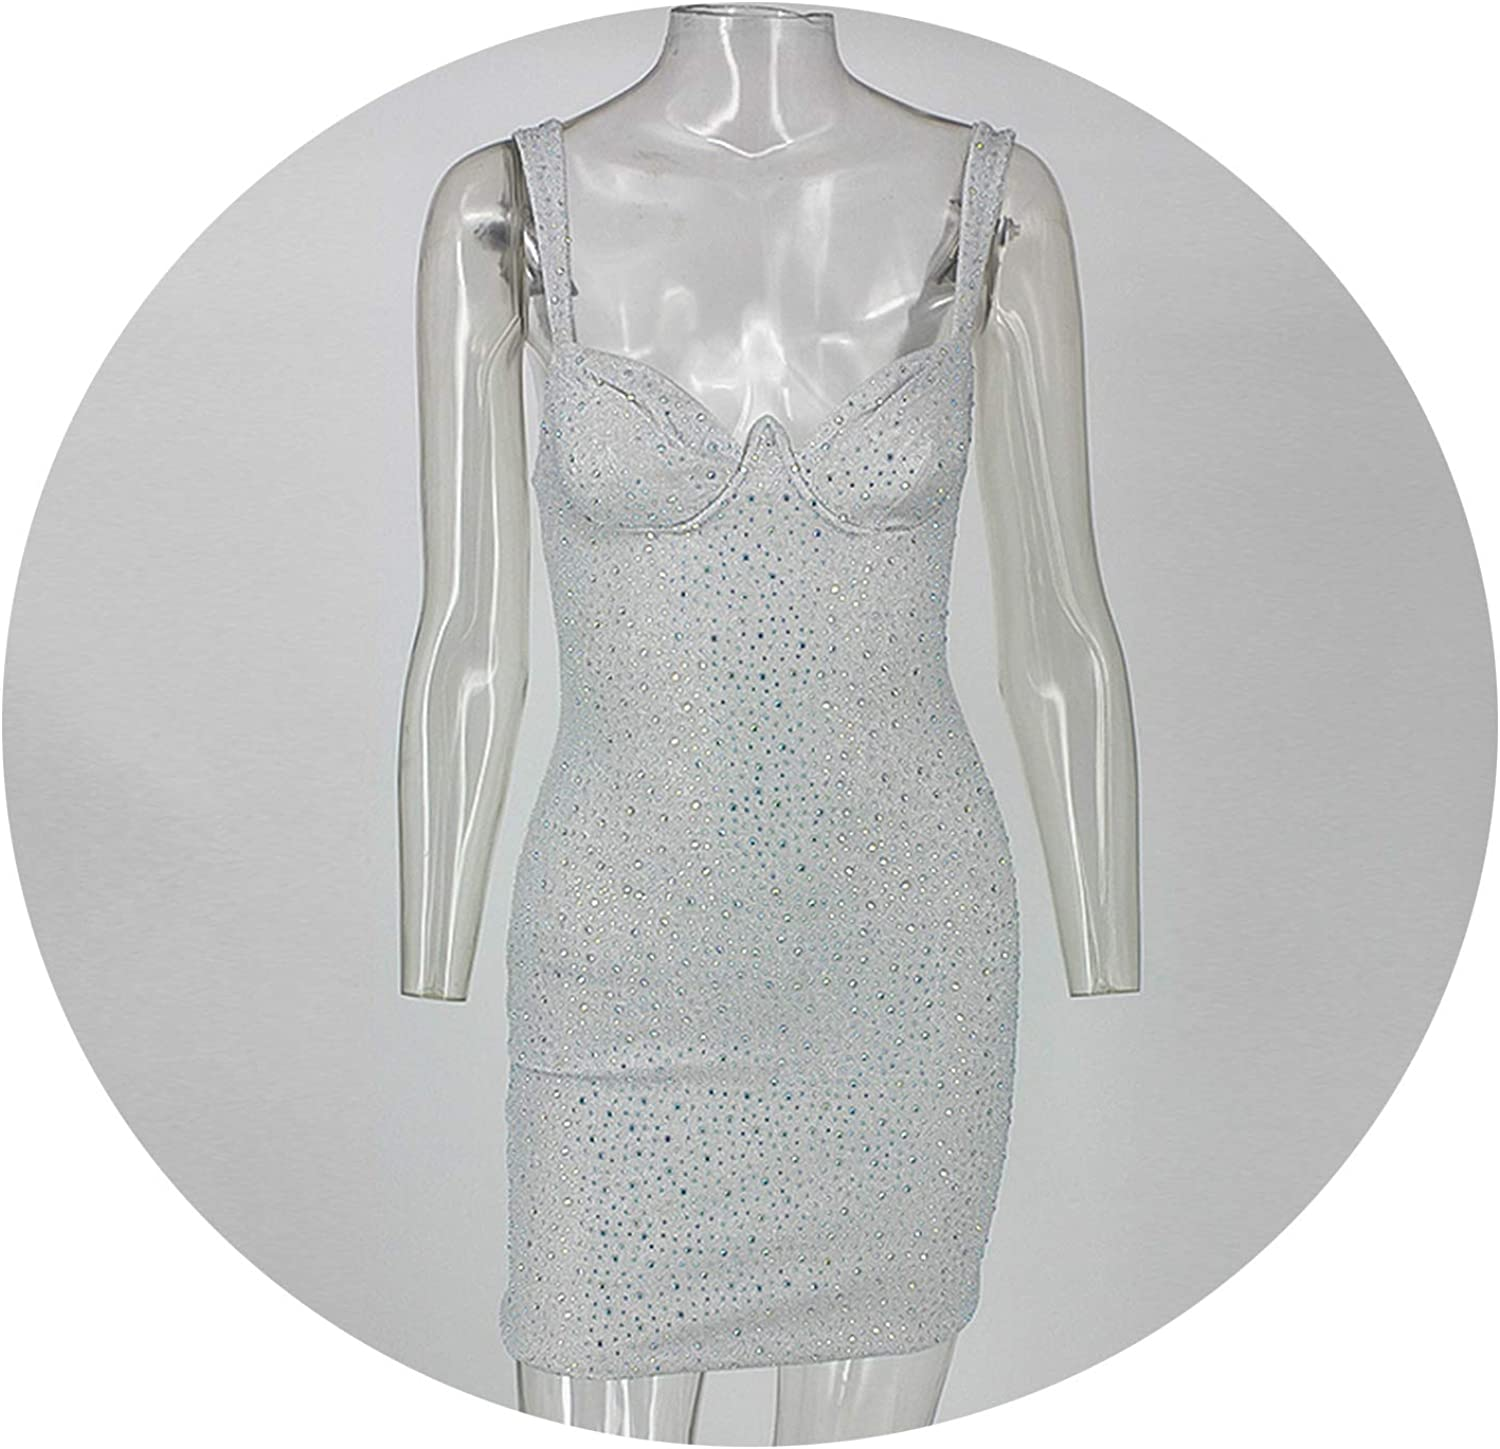 Sunny Super Backless Spaghetti Strap Sequined Club Wears Celebrity Party Dress